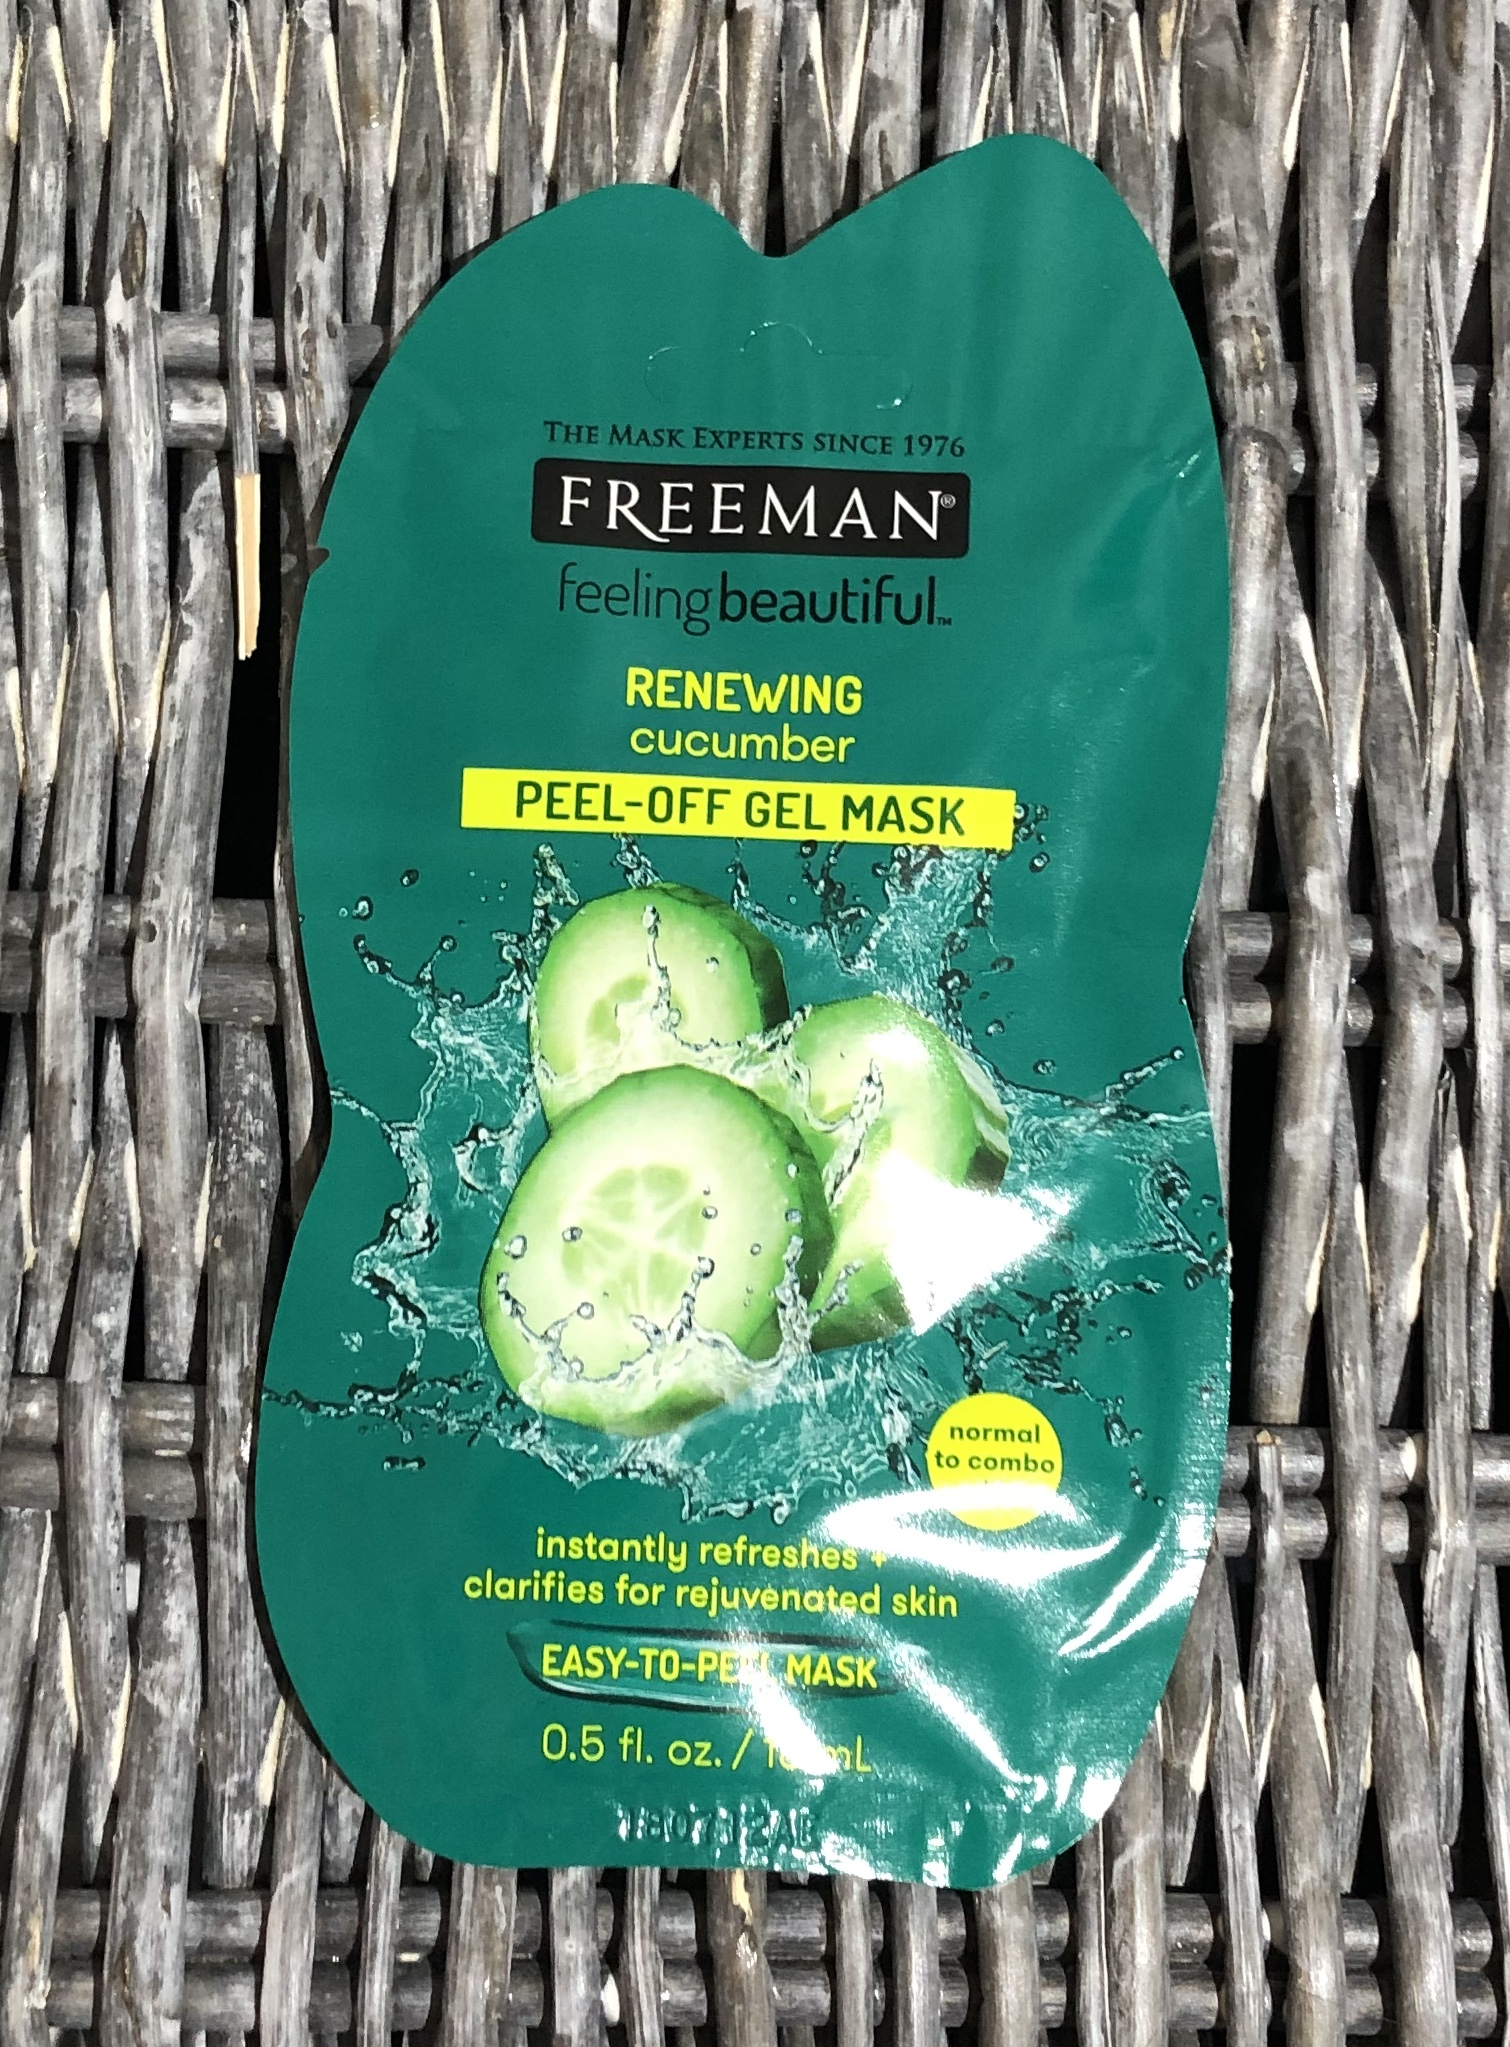 Freeman Feeling Beautiful Renewing Cucumber Peel-Off Gel Mask Review graphic